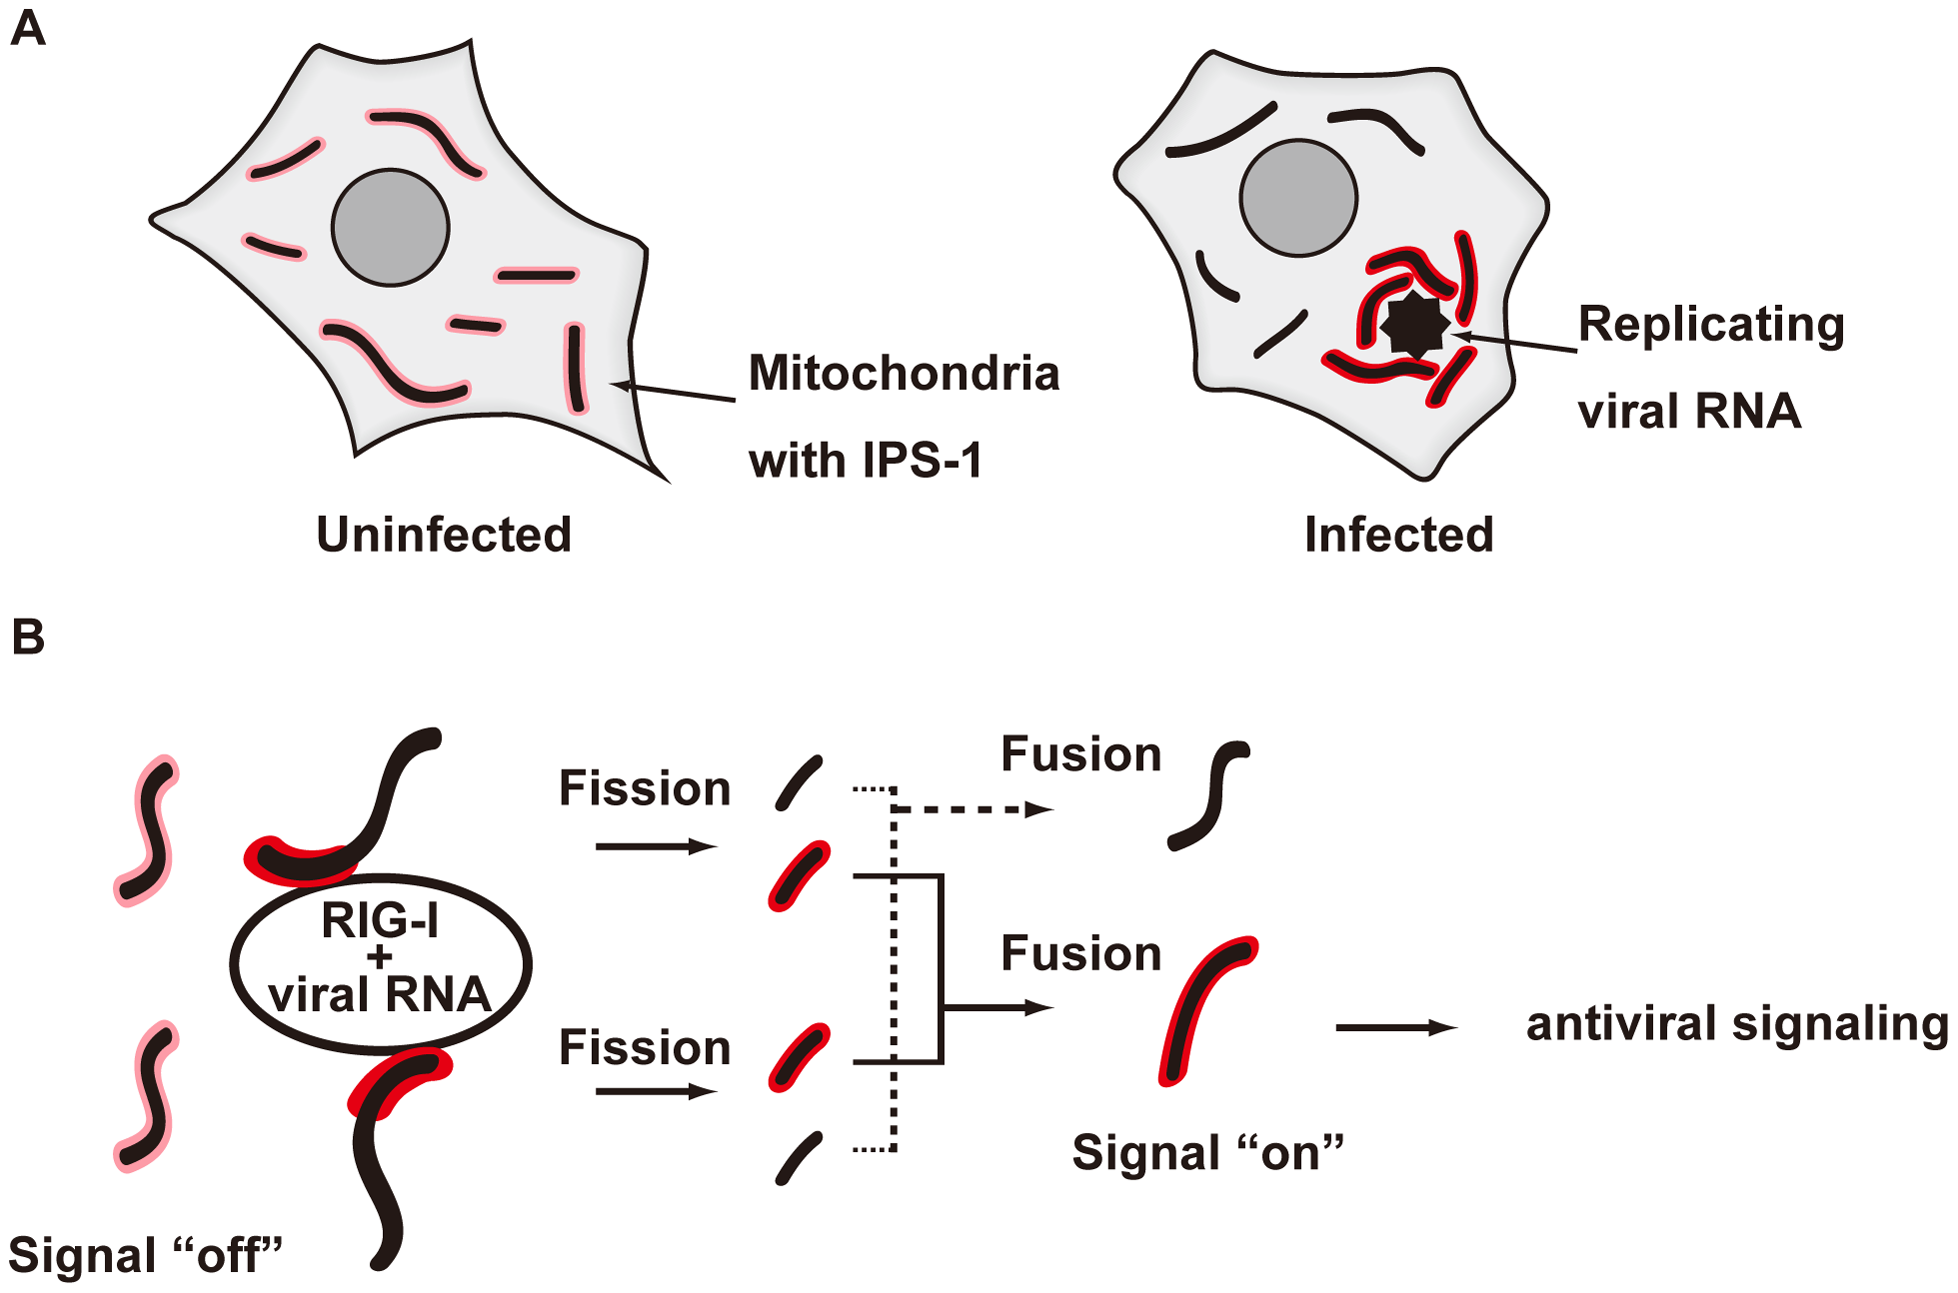 Model for the redistribution of IPS-1 mediated by mitochondrial organization.